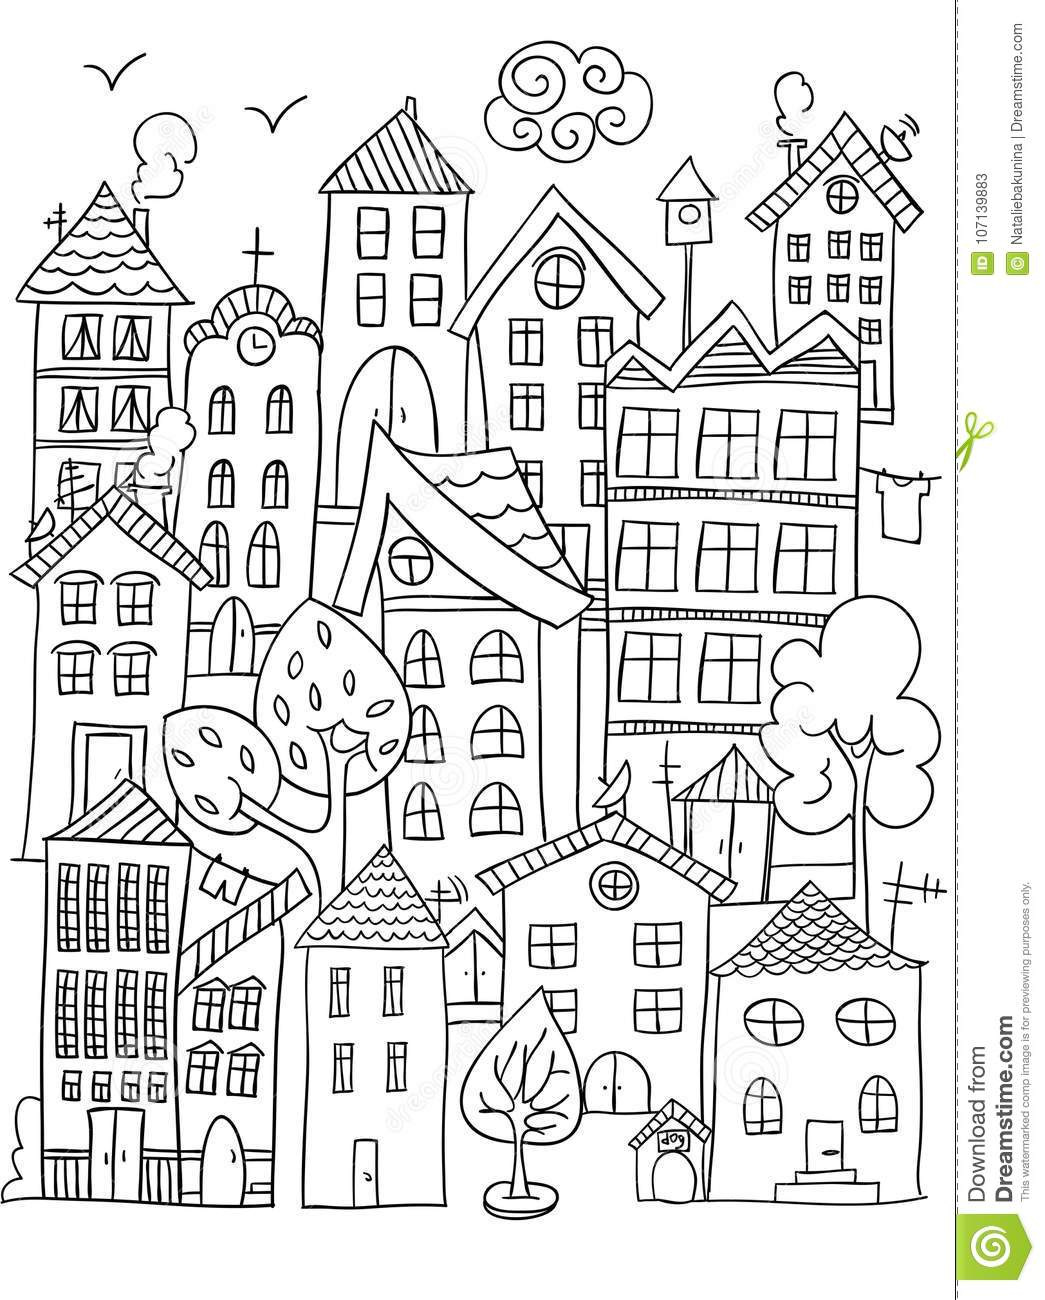 Exelent City Coloring Page Motif